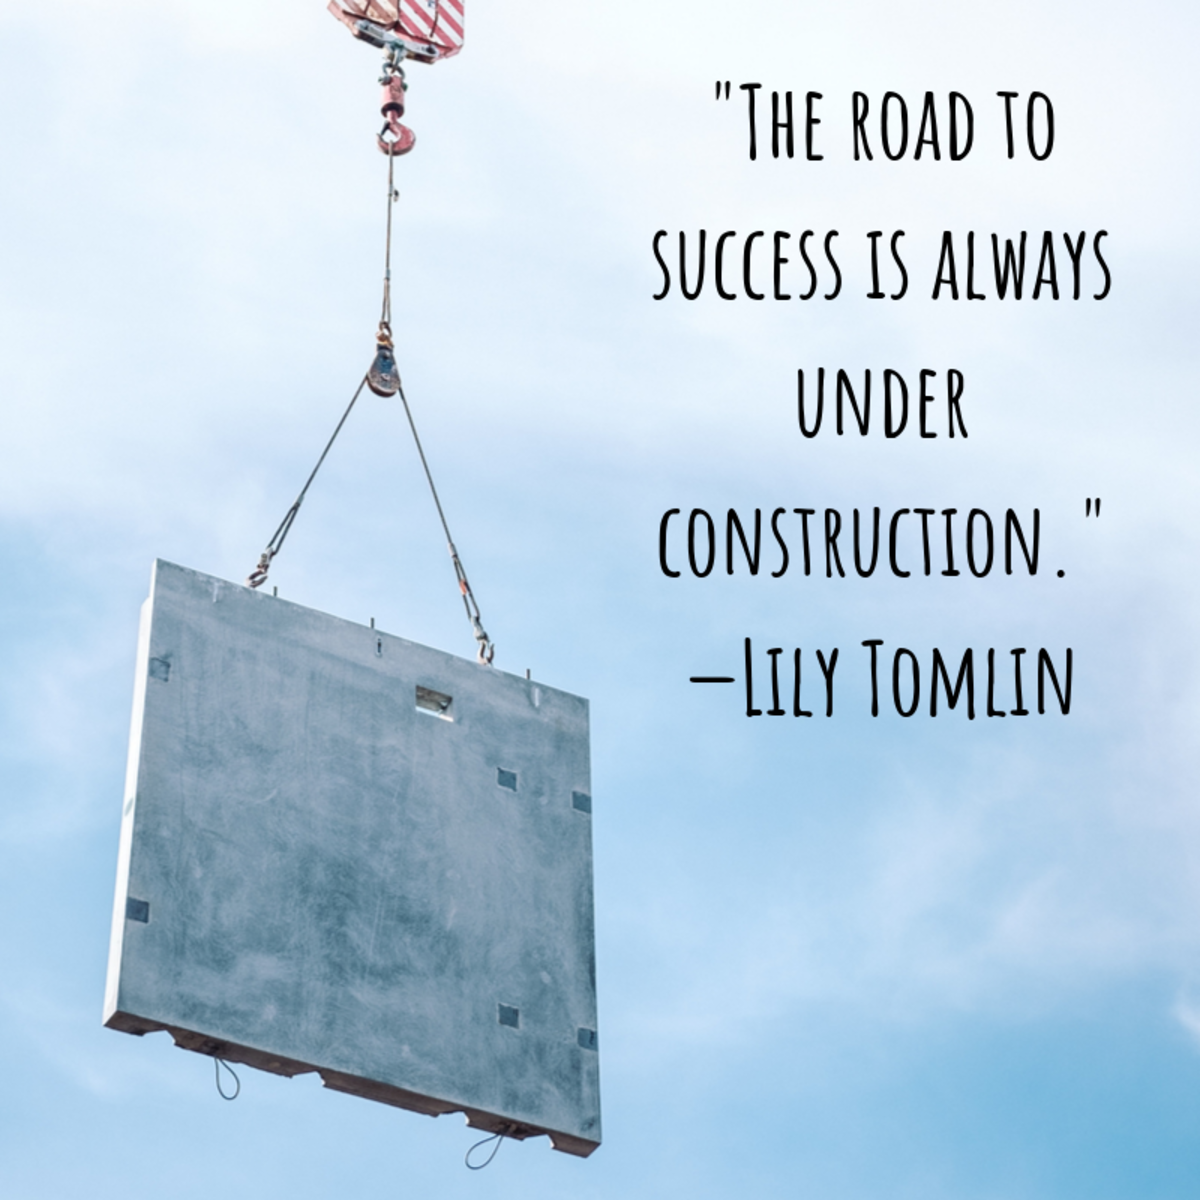 """""""The road to success is always under construction."""" —Lily Tomlin"""